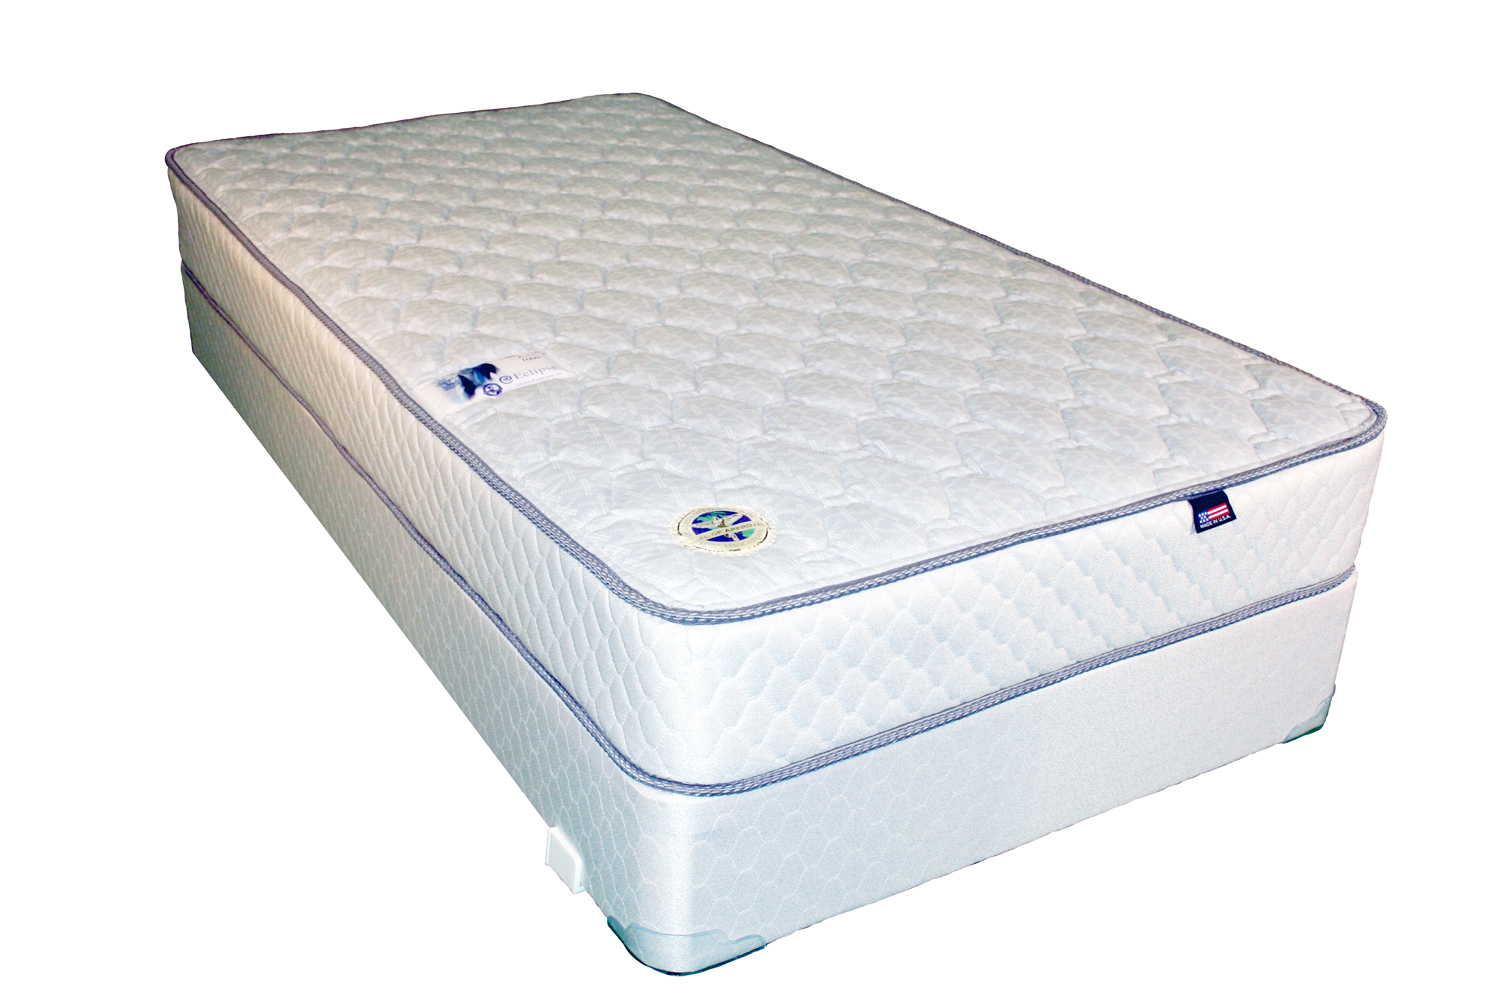 Mattress factory coupon code happy memorial day 2014 for Which mattress company is the best